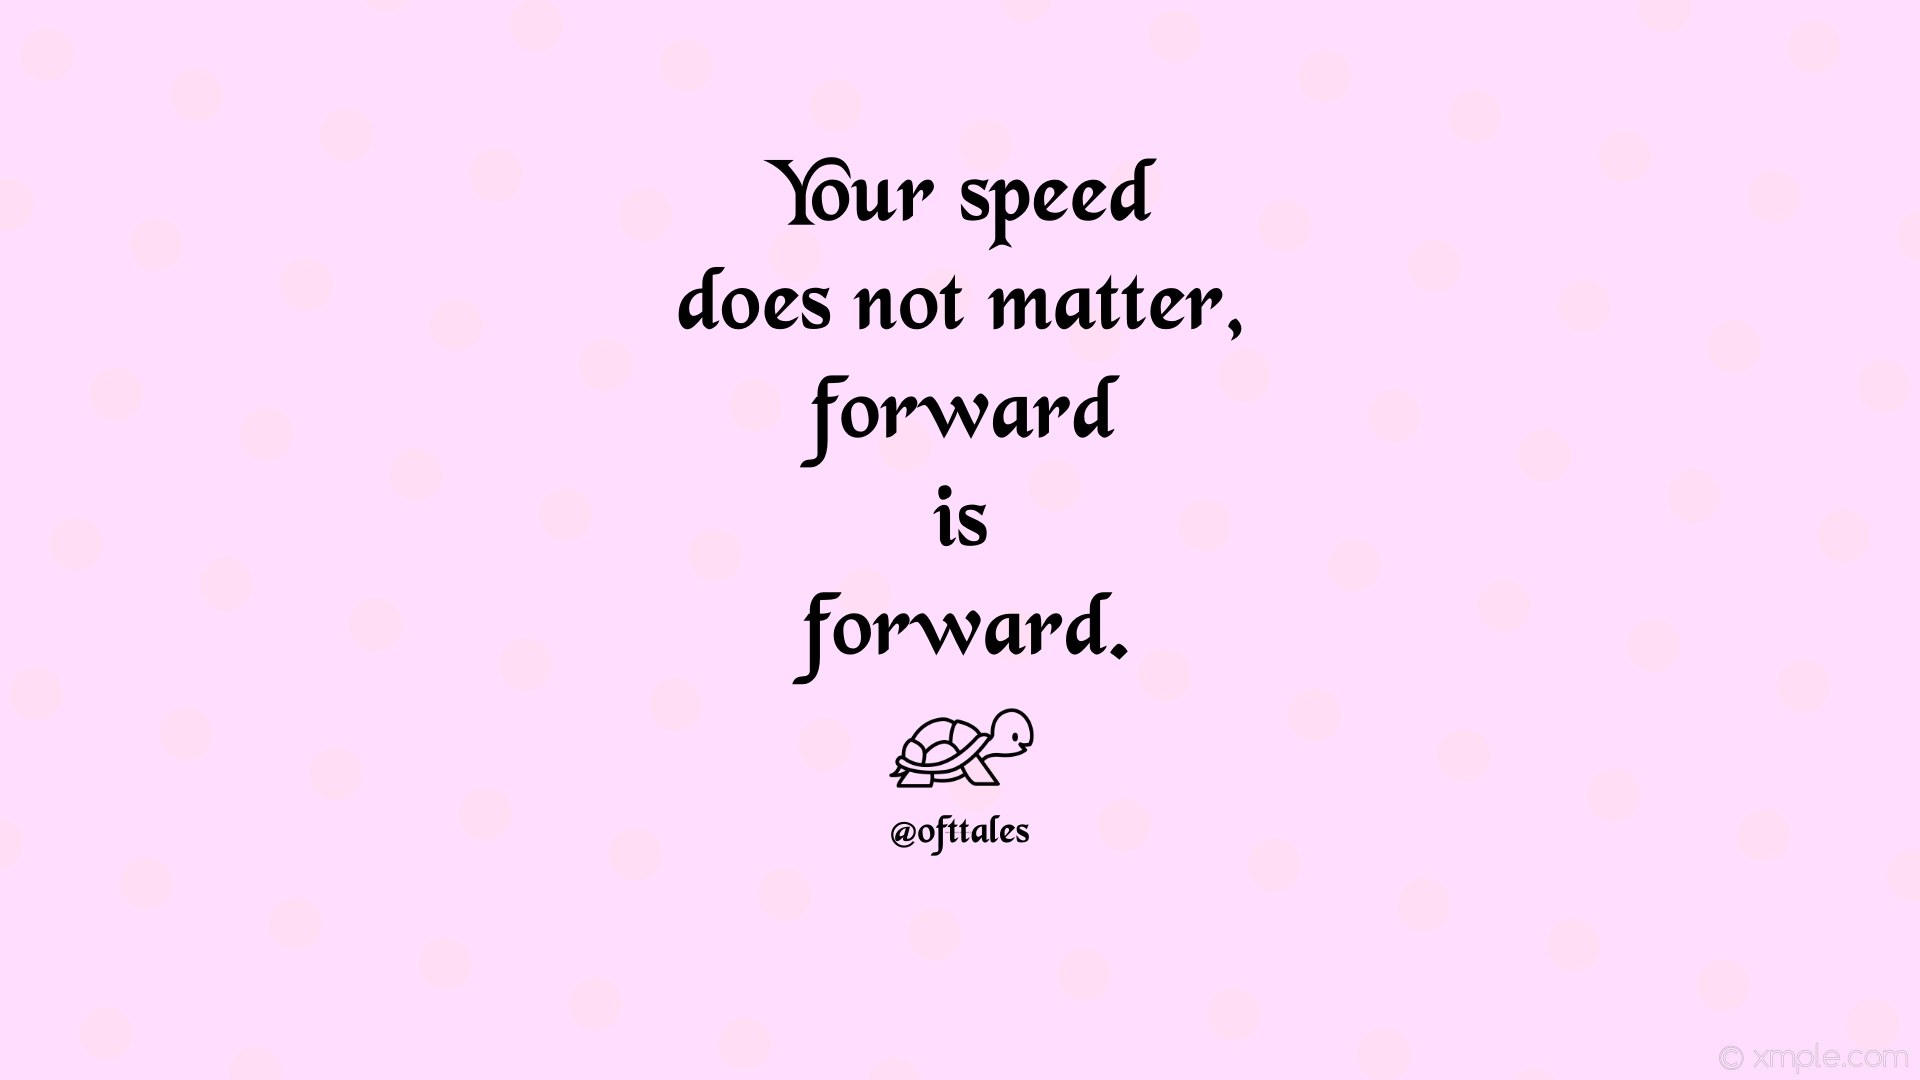 [image] Your speed does not matter, forward is forward!